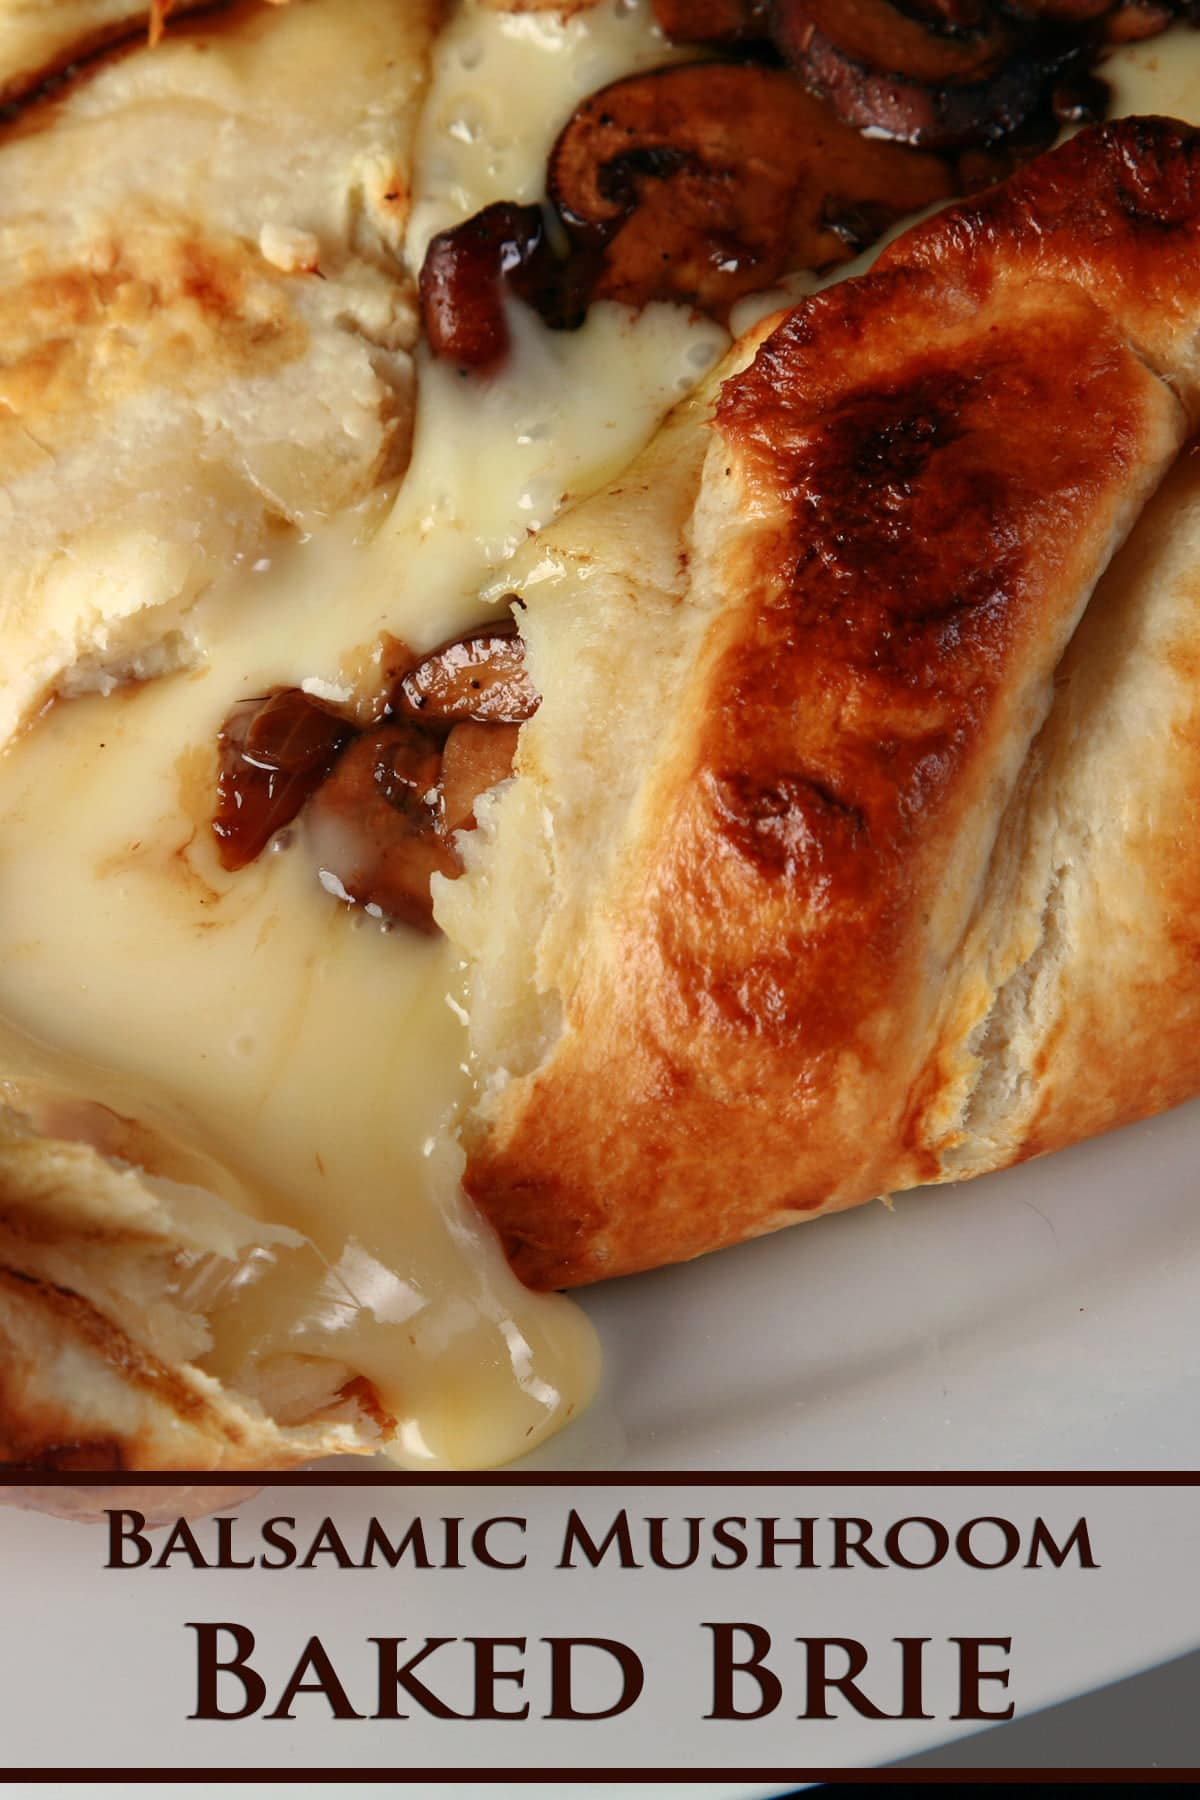 A balsamic mushroom baked brie is broken open, with melted cheese and sauteed mushrooms oozing out onto a white plate.